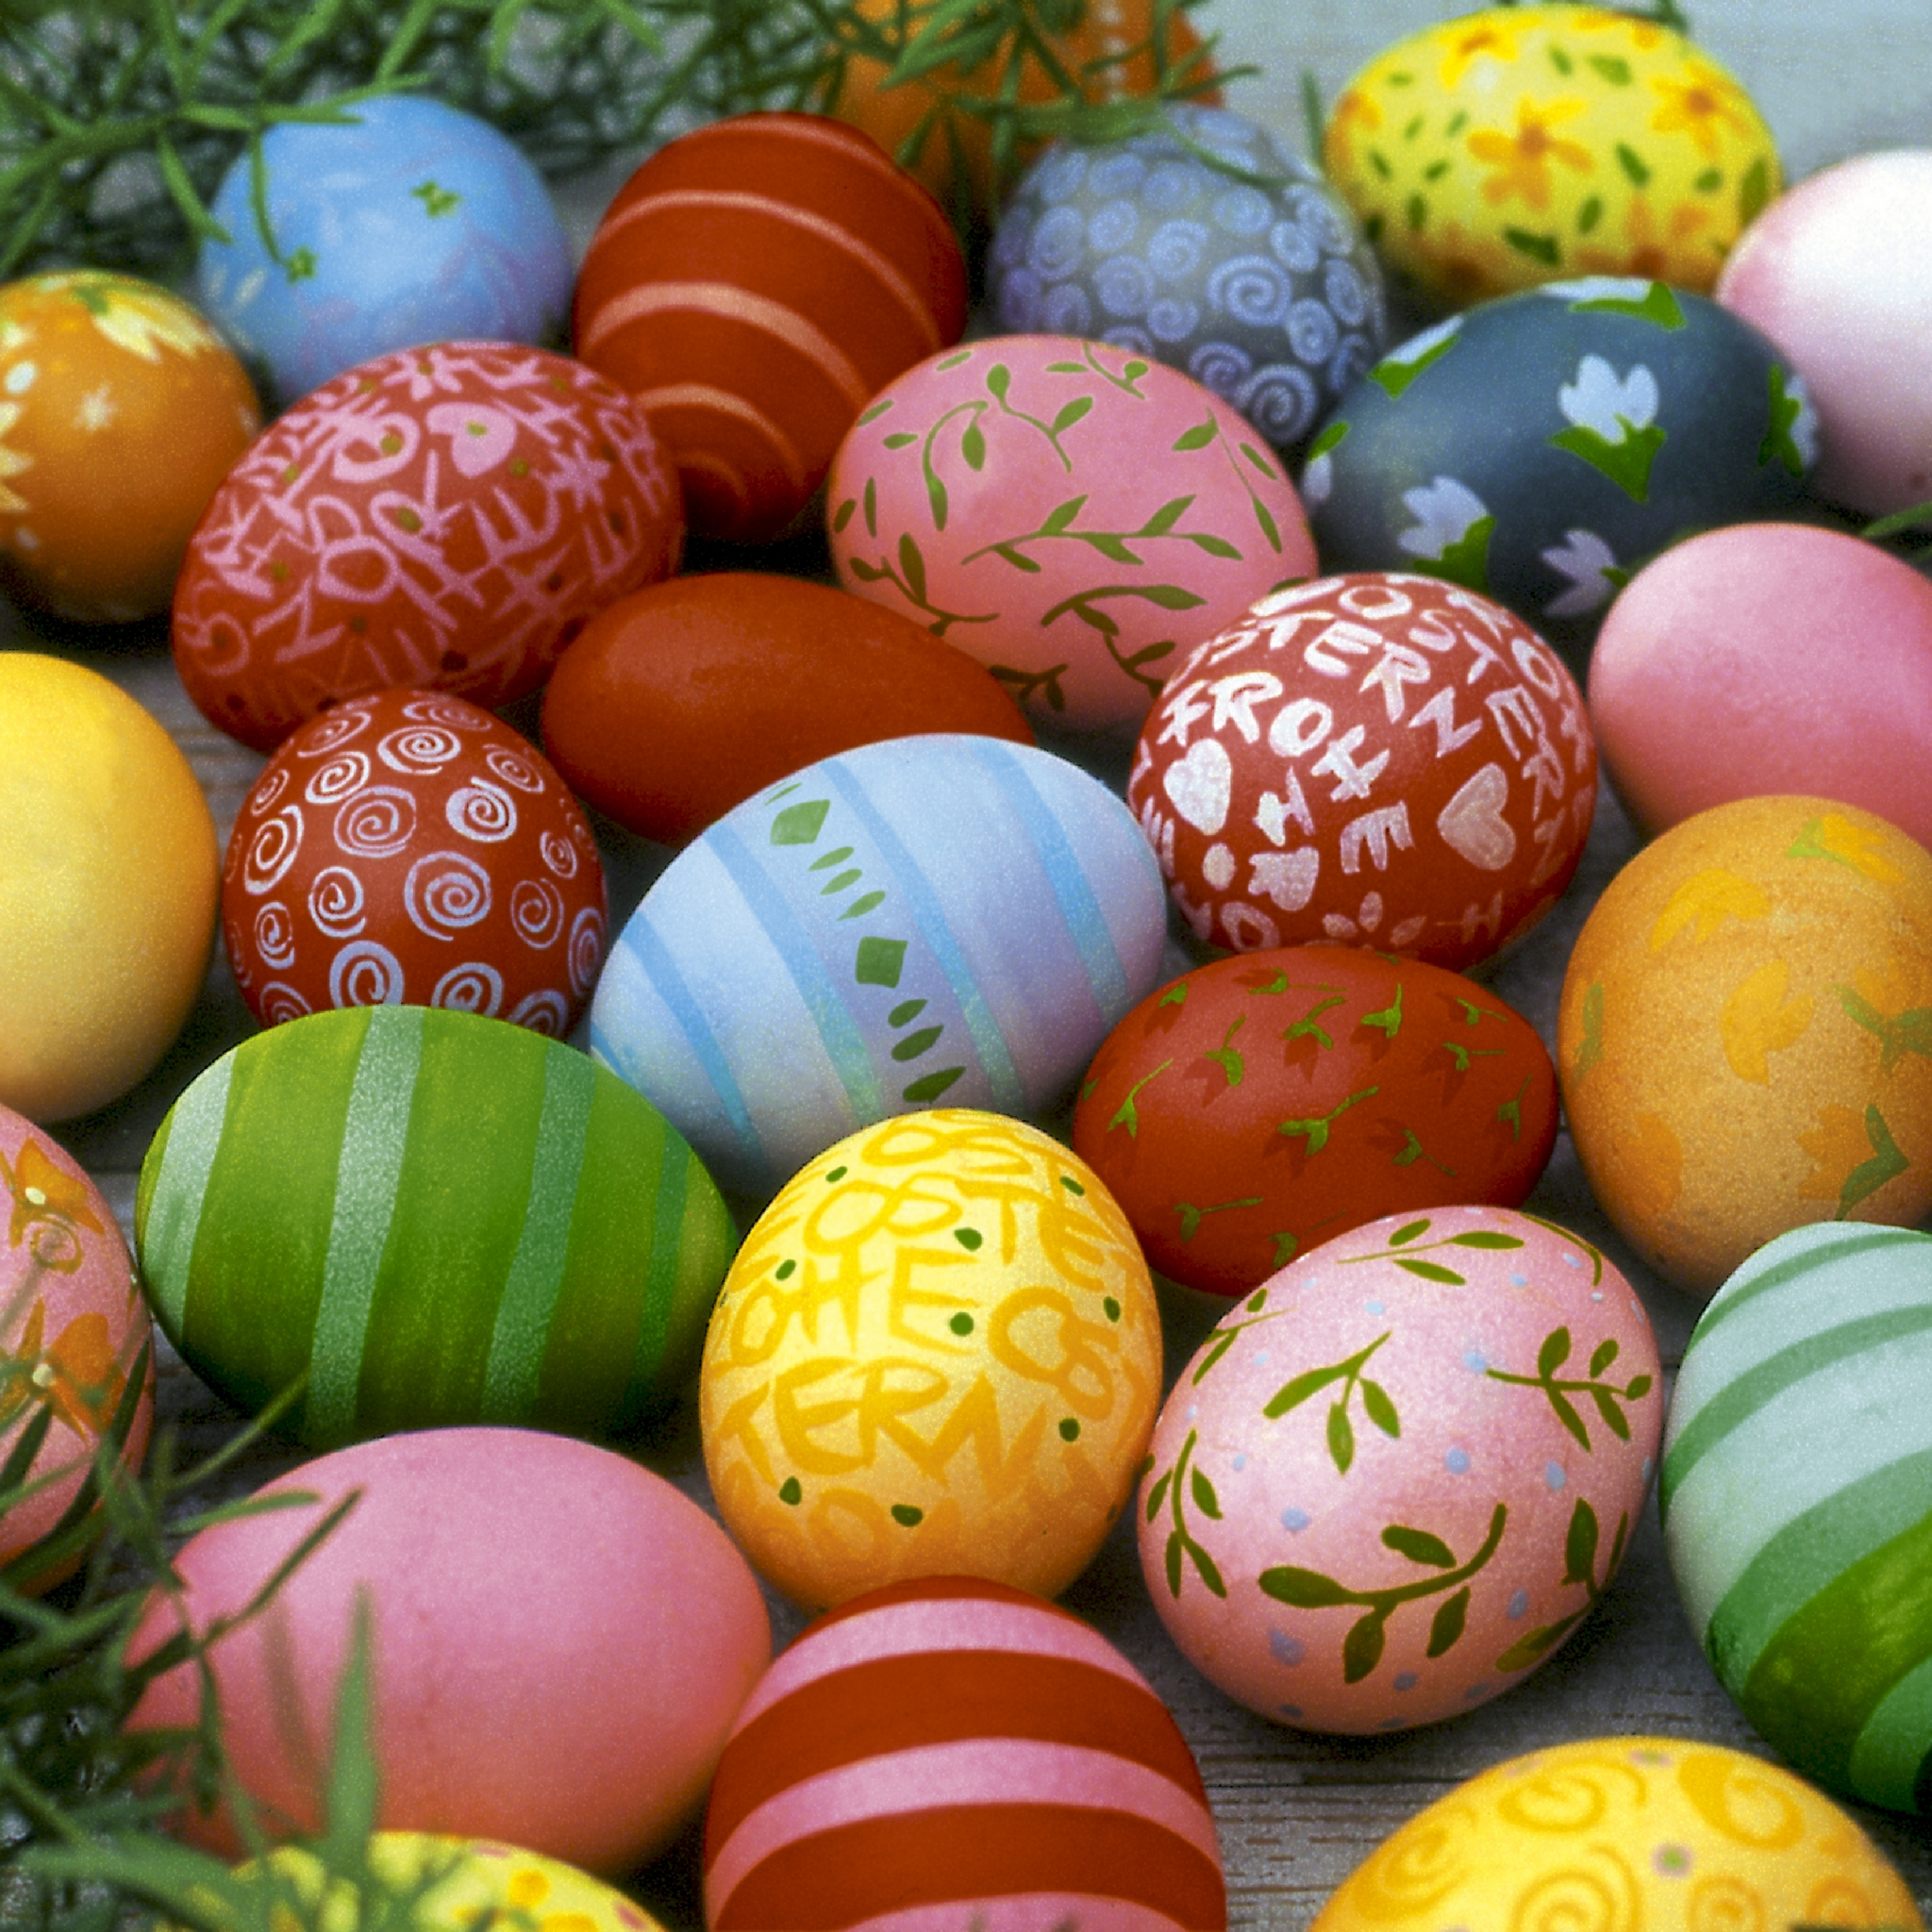 20 Servietten - 25 x 25 cm Colourful eggs,  Ostern - Ostereier,  Ostern,  cocktail servietten,  Ostereier